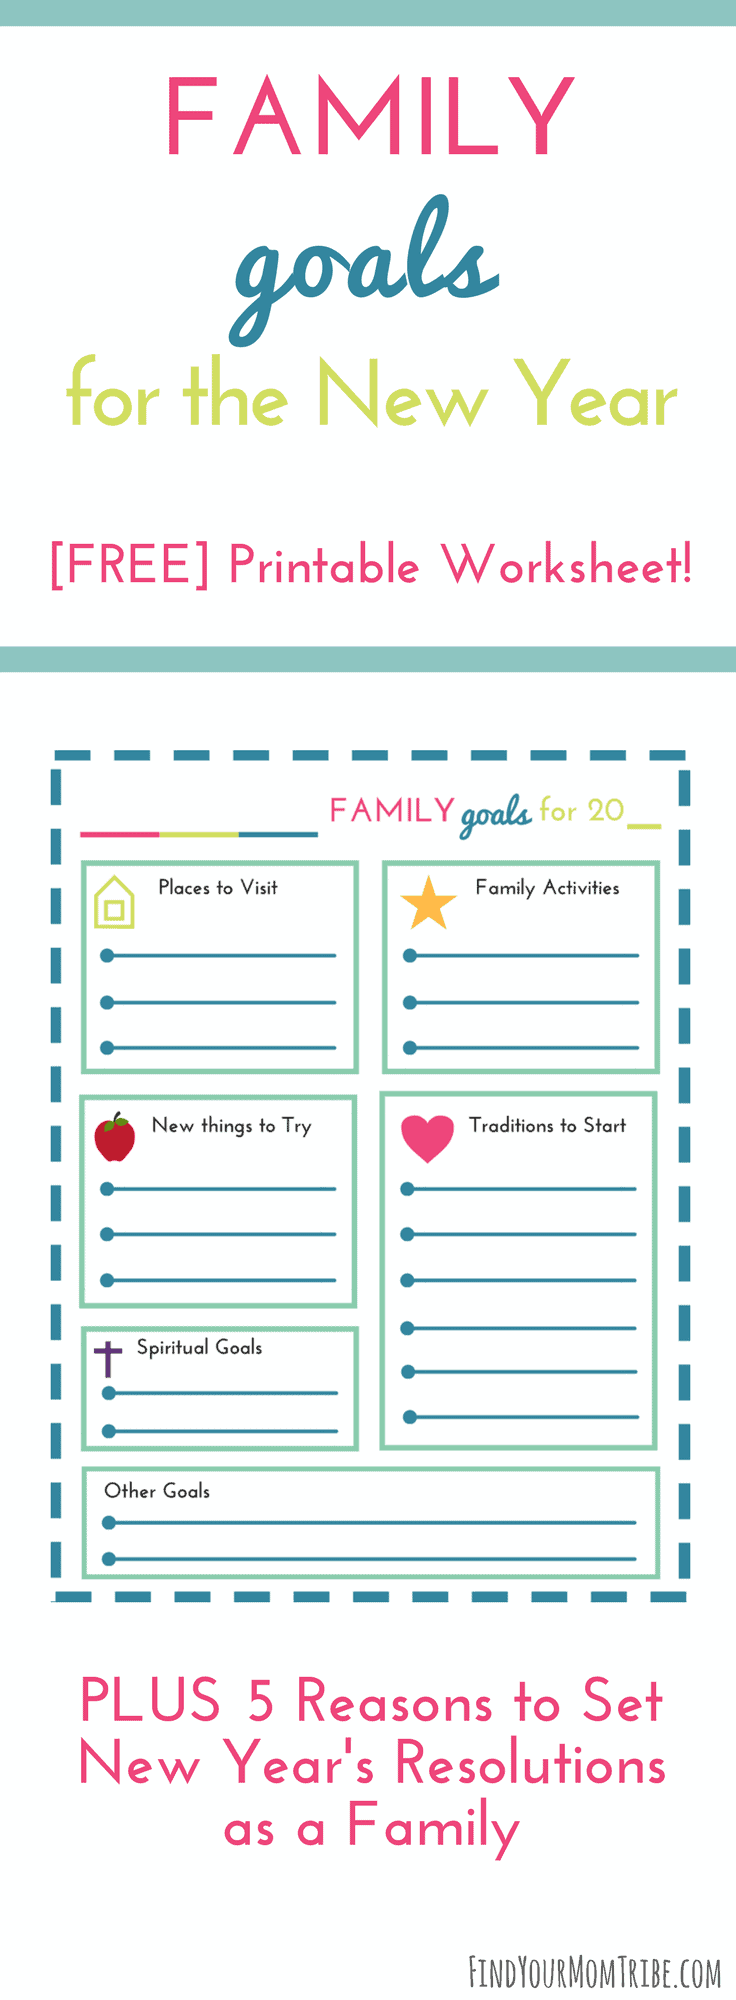 5 Reasons to Set New Year's Resolutions as a family - PLUS free printable New Year's worksheet! #goalsetting #NewYears #FreePrintables #NewYearsWorksheet #NewYearsResolutions #NewYearsPlanner #FamilyGoals #2018 #NewYears2018